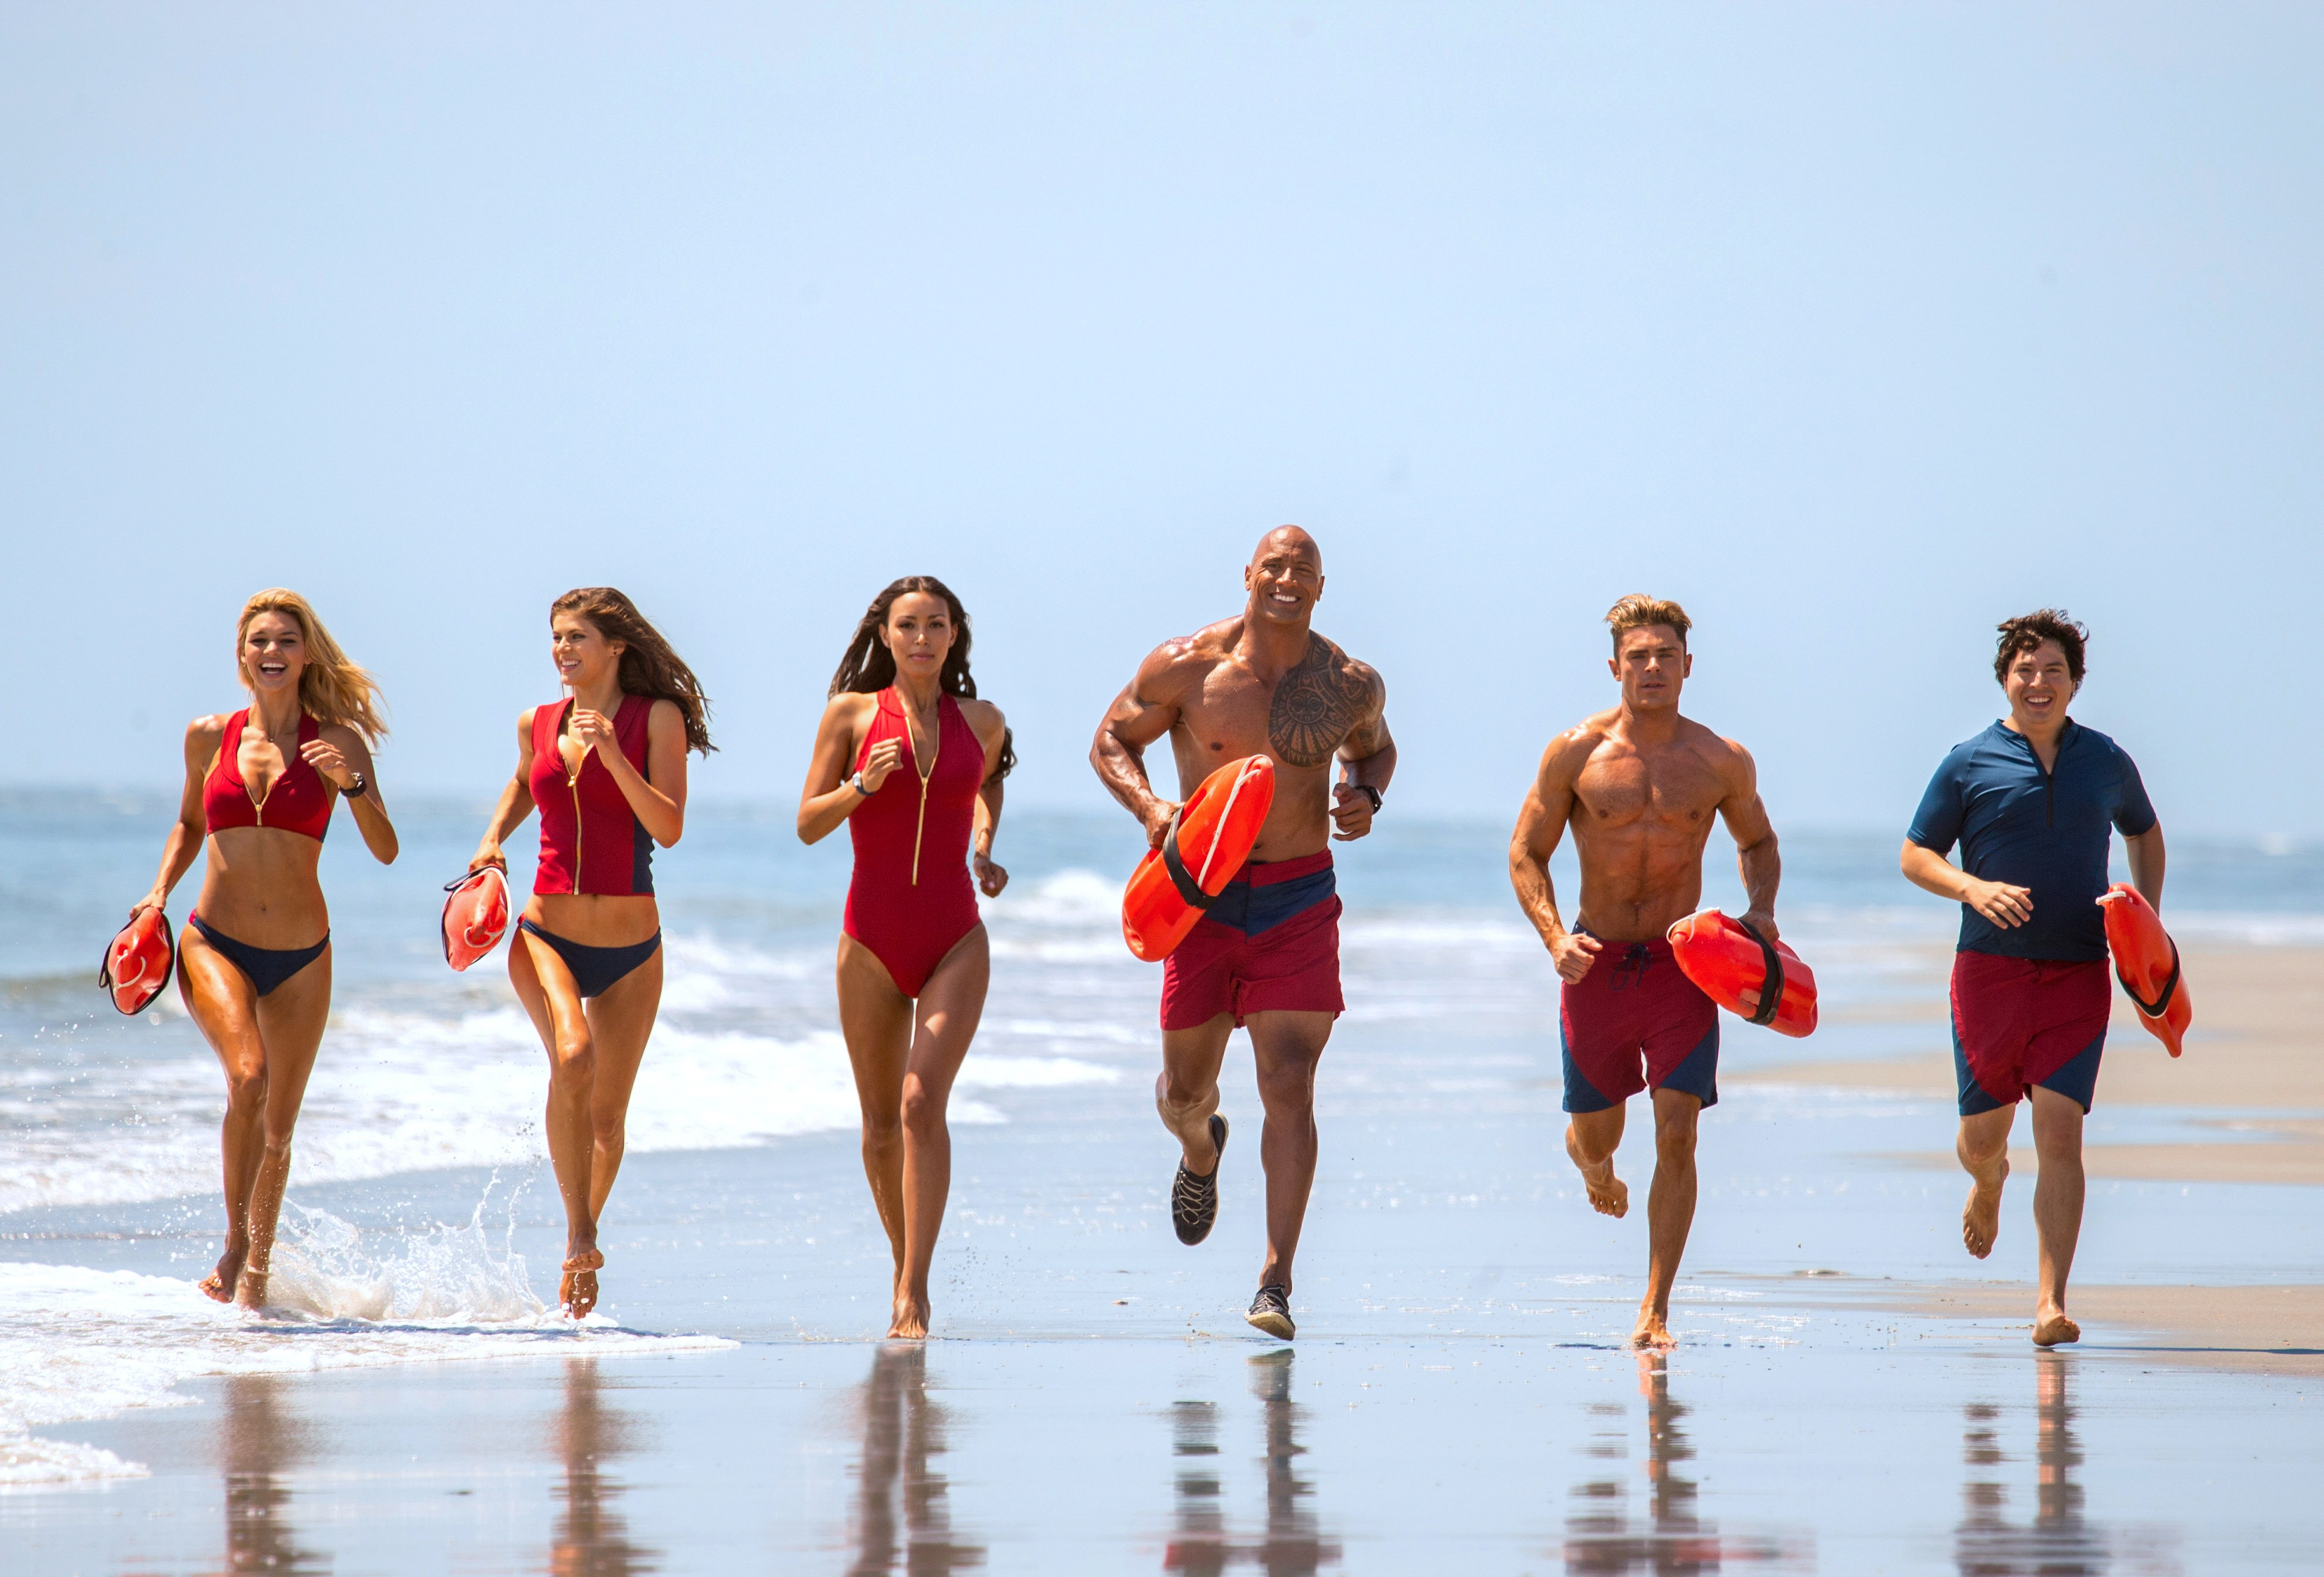 Baywatch 2017 4k, HD Movies, 4k Wallpapers, Images